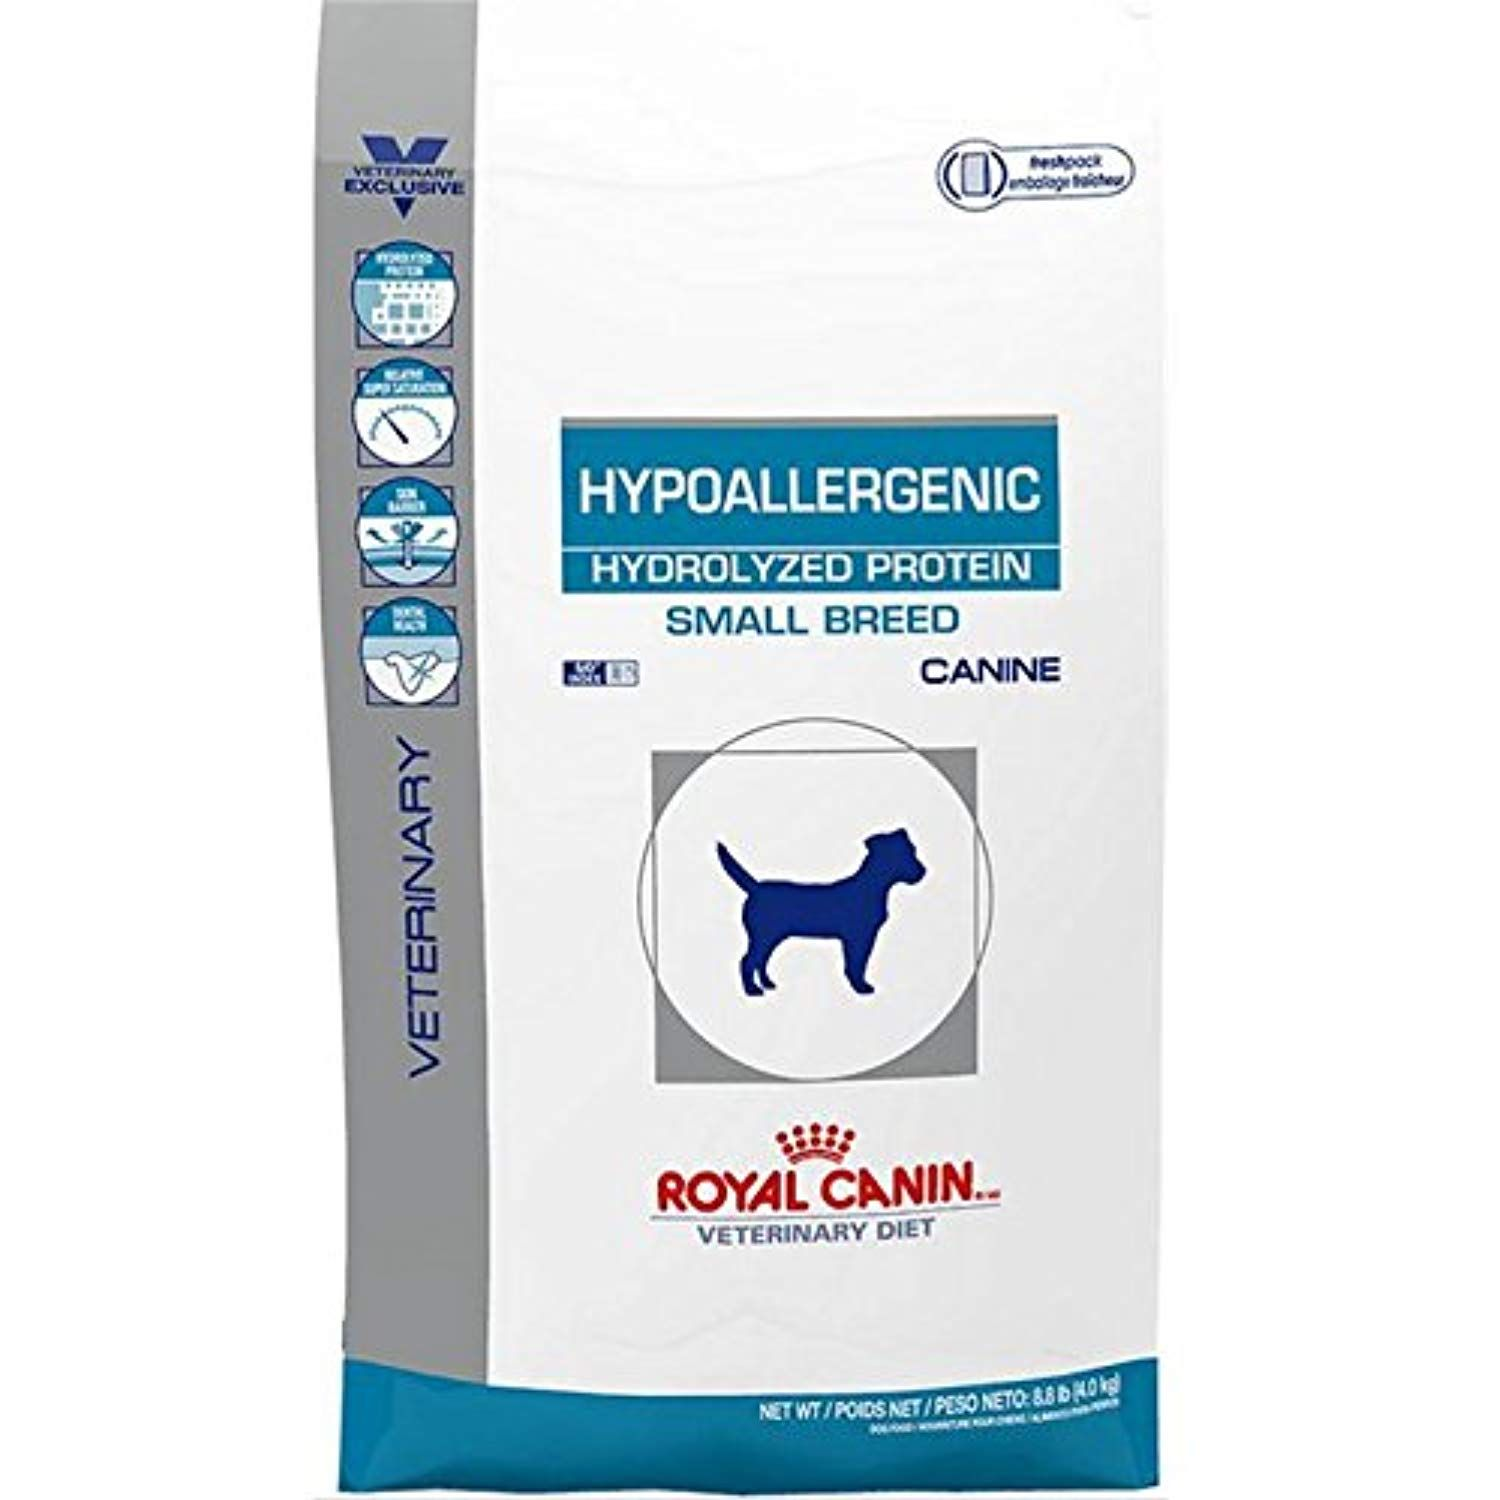 Royal Canin Canine Hypoallergenic Hydrolyzed Protein Dry Small Breed 8 8 Lb Want To Know More Click On The I Dry Dog Food Dog Food Recipes Royal Canin